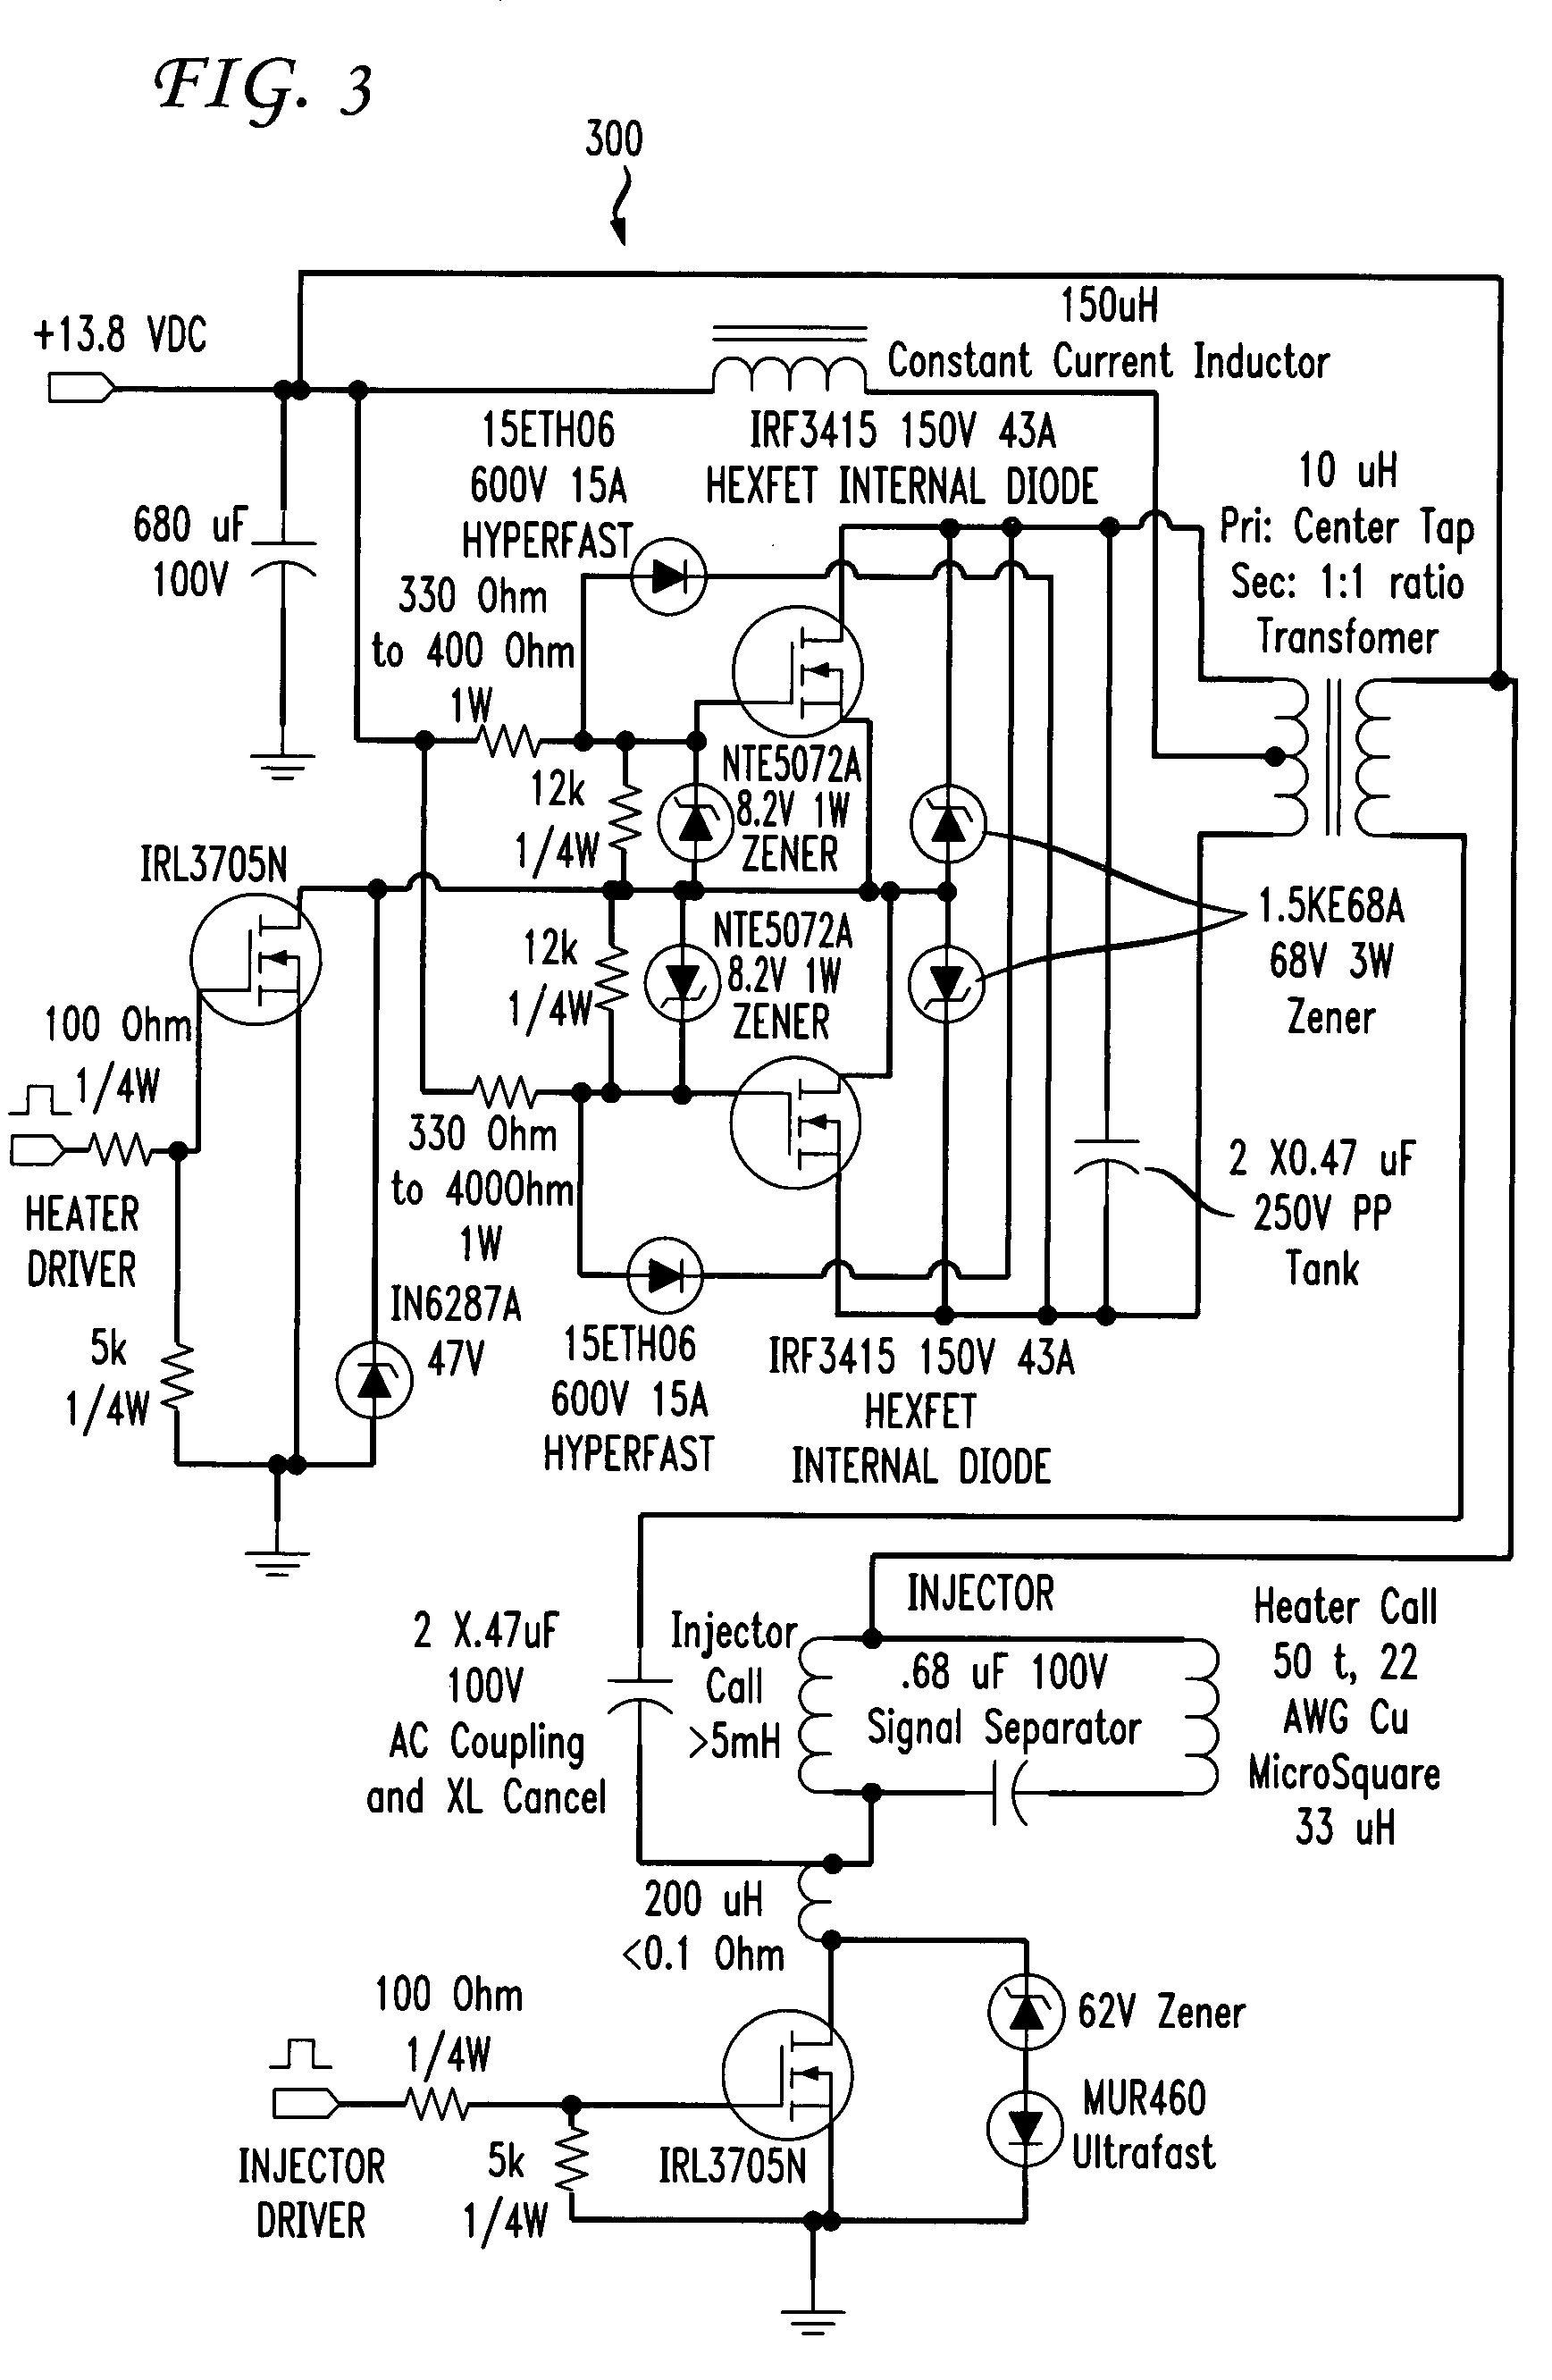 Dc Tesla Coil Wiring Diagram Html together with  likewise Spark Plug Connections On Ignition Coils Bosch Engine in addition Current likewise Simple Induction Heater Circuit Hot. on induction coil driver